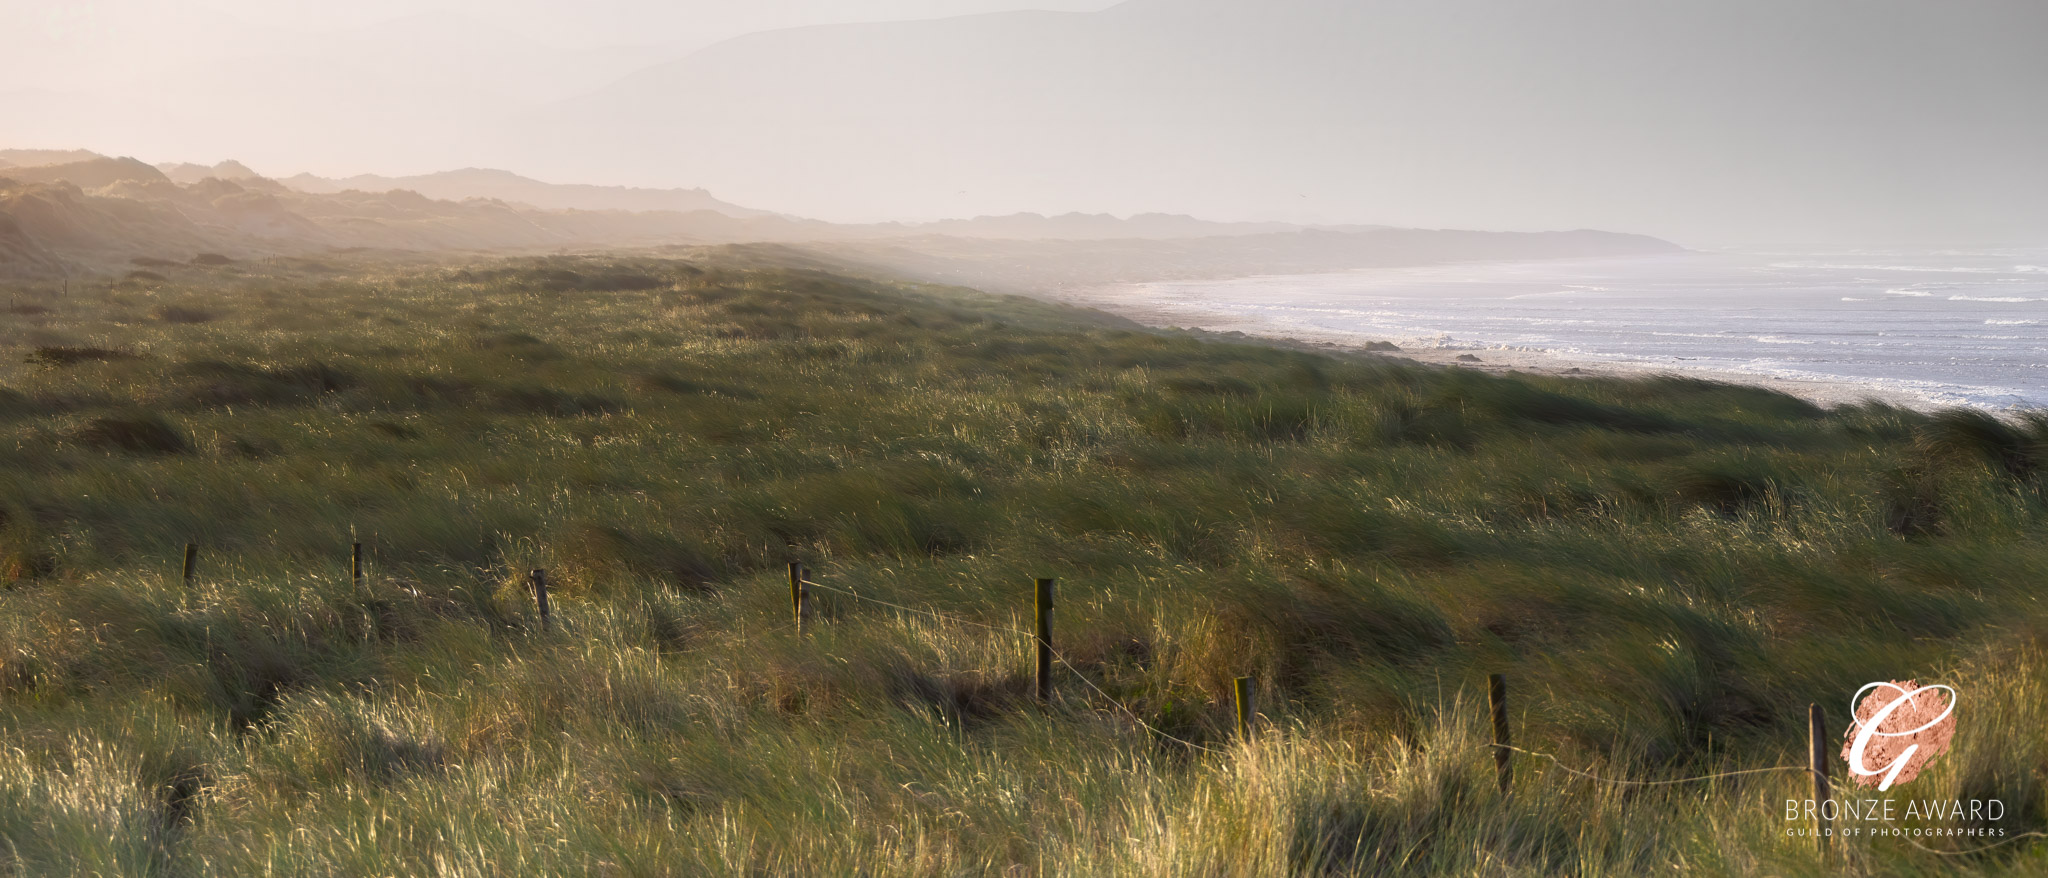 Dunes, sea and beach as dawn rises the morning after a storm on Inch Strand, County Kerry